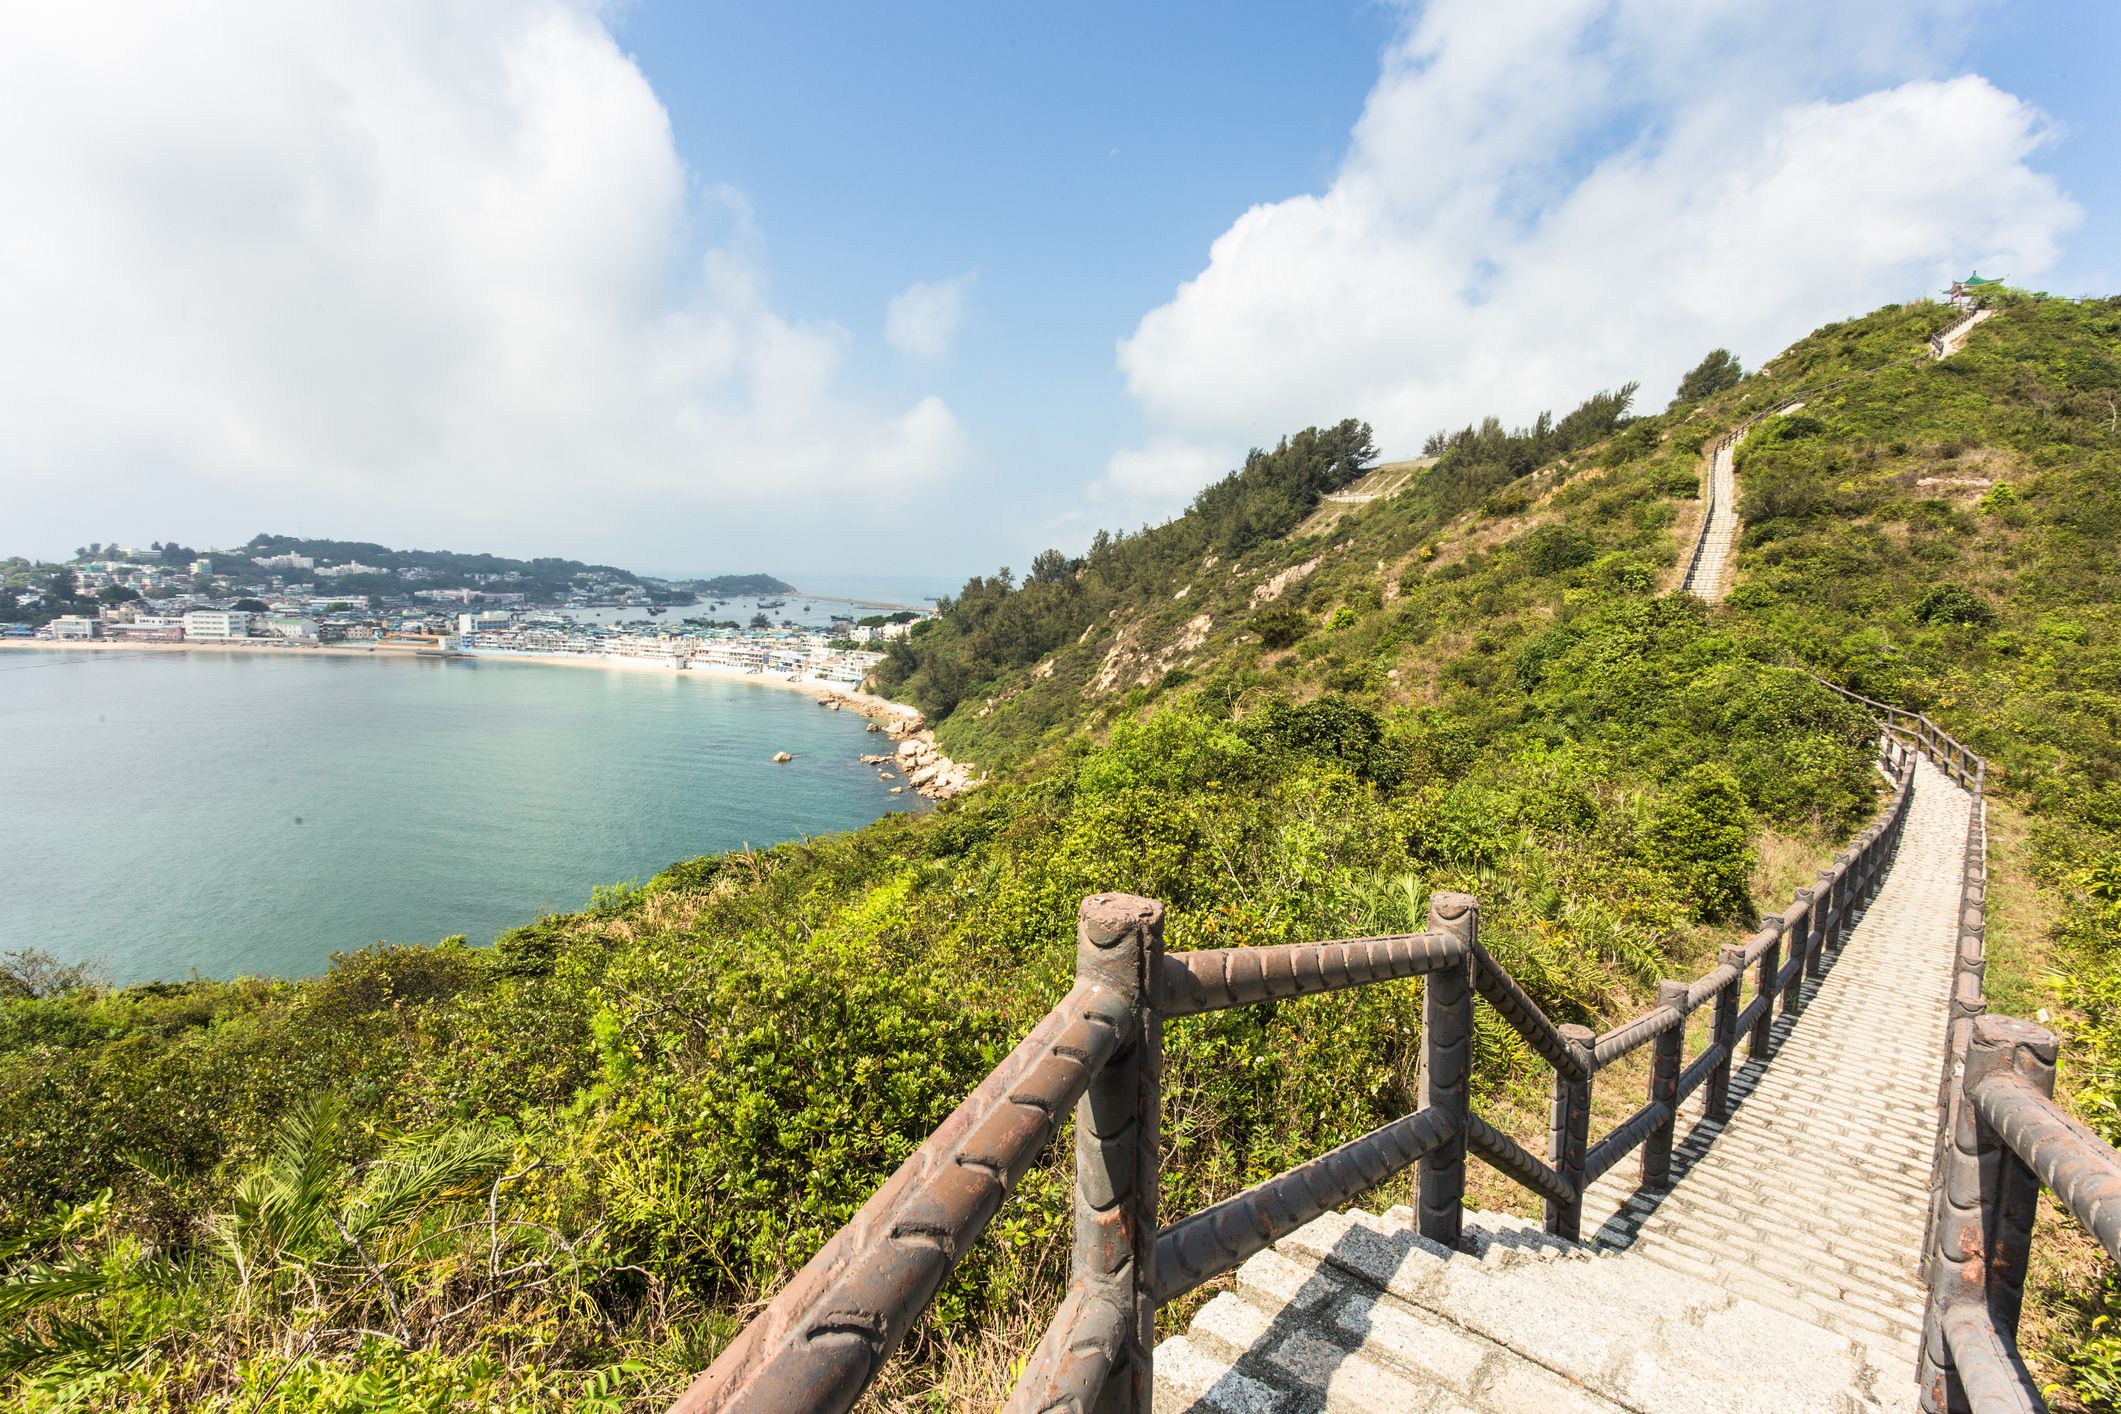 How To Get To Cheung Chau Island In Hong Kong